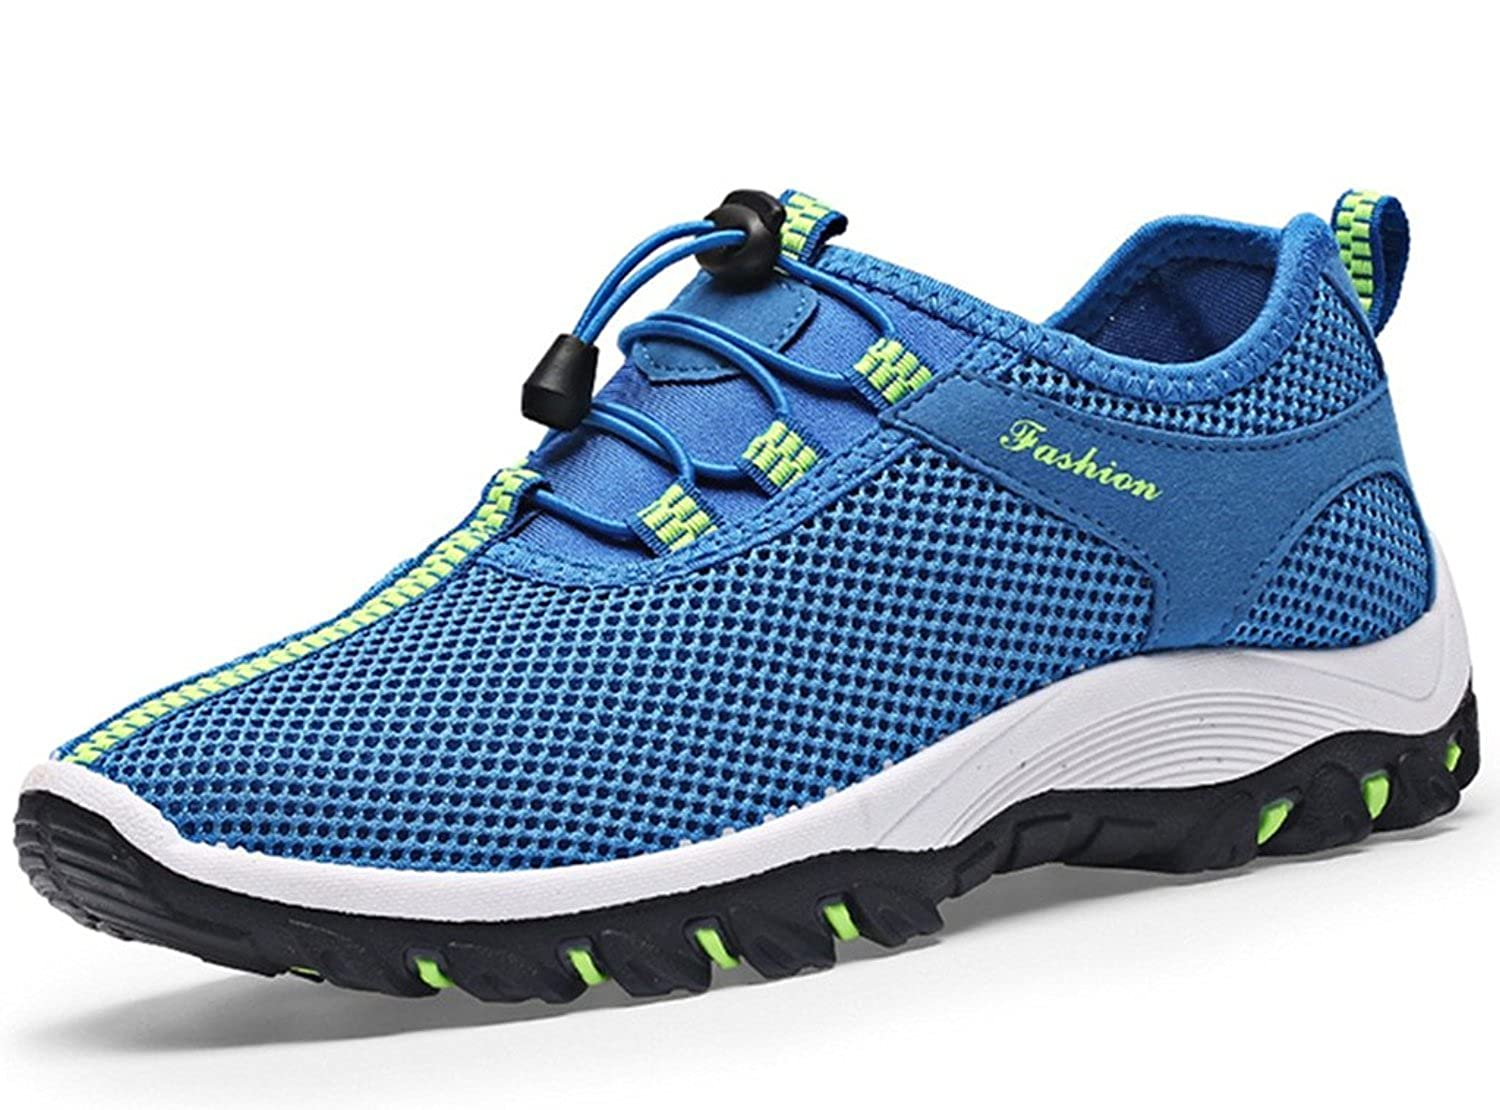 Men's Casual Outdoor Hiking Shoes Trail Running Shoes by WXDZ